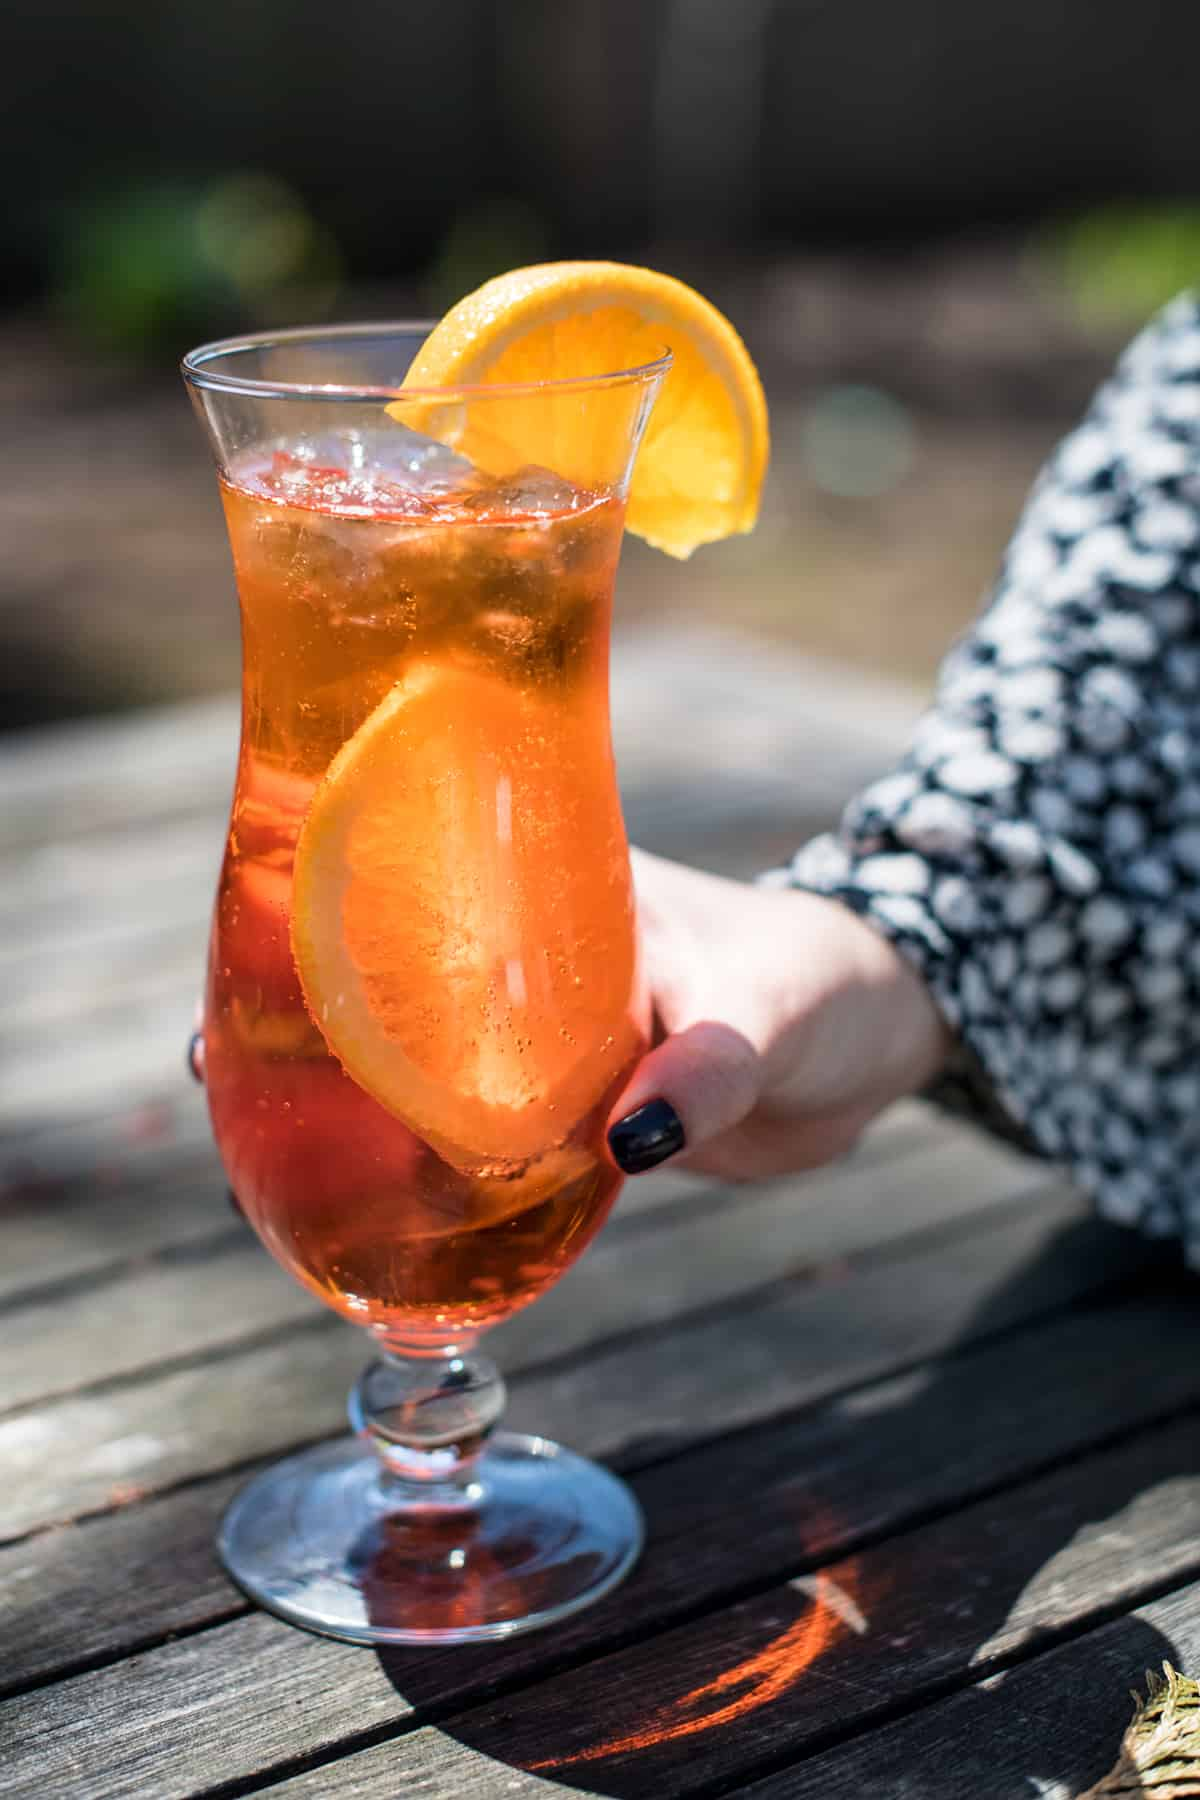 Full glass of my Aperol Spritz recipe